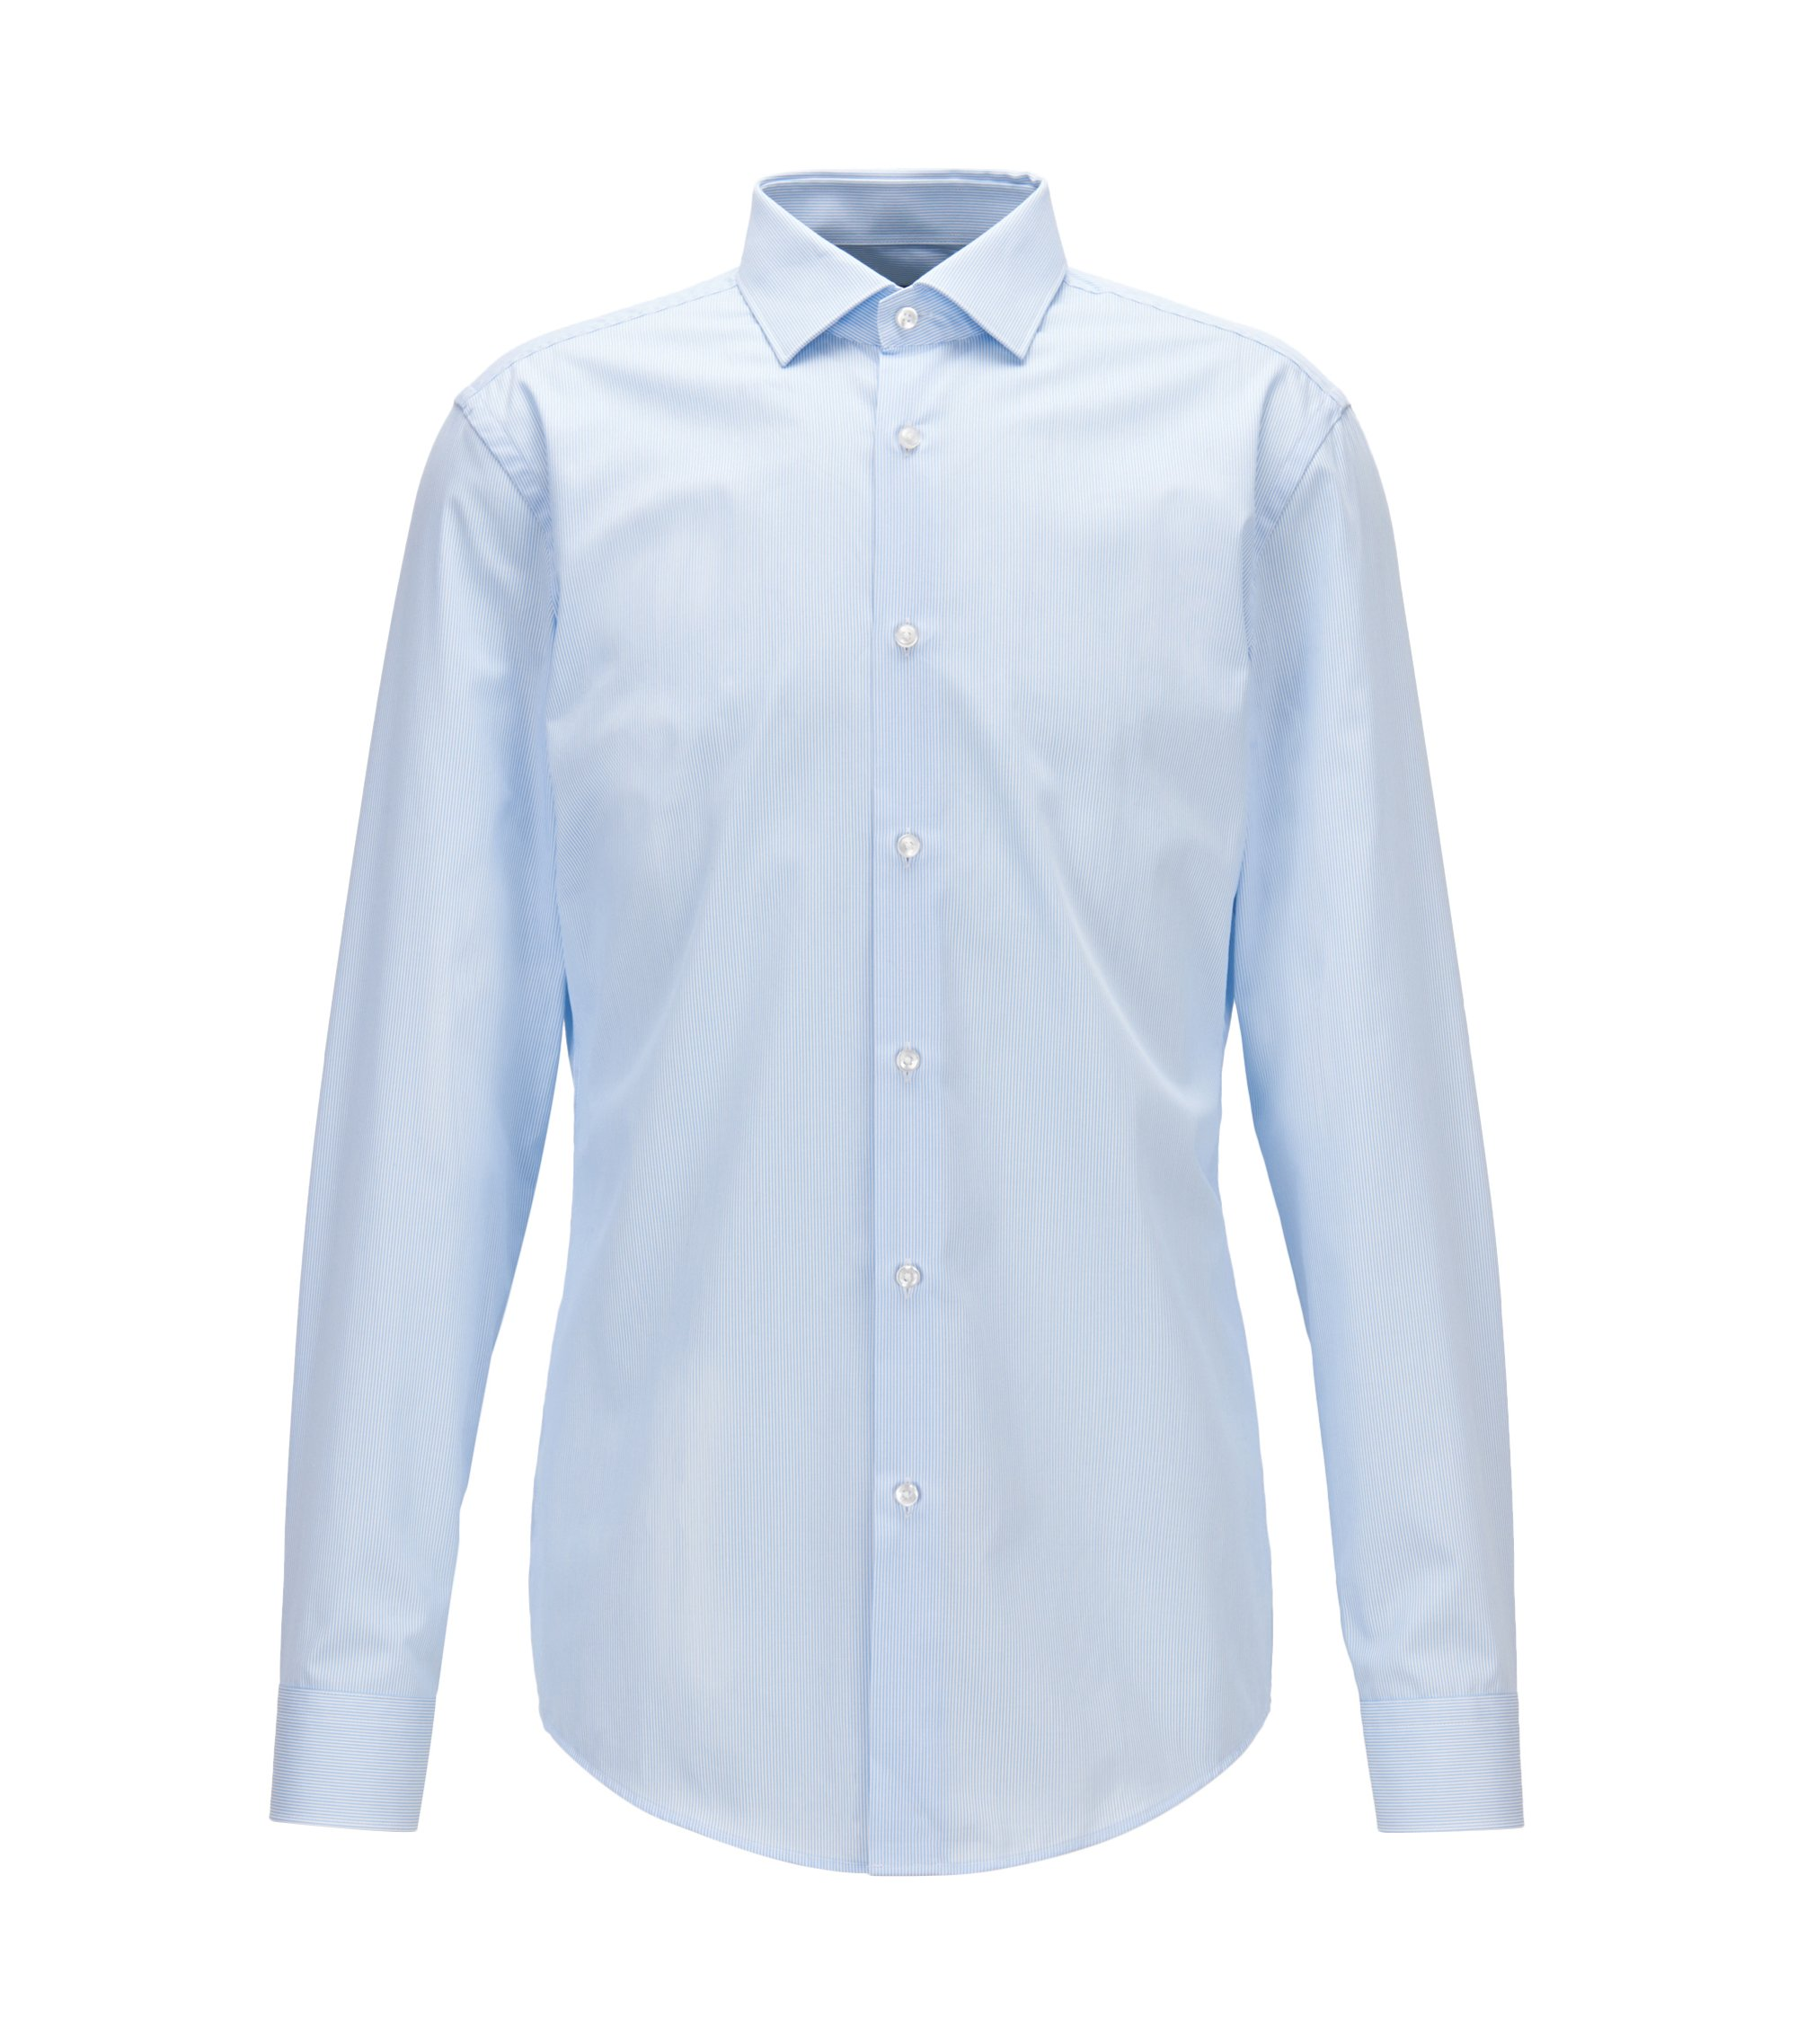 Camicia a righe slim fit con finitura all'aloe vera, Celeste